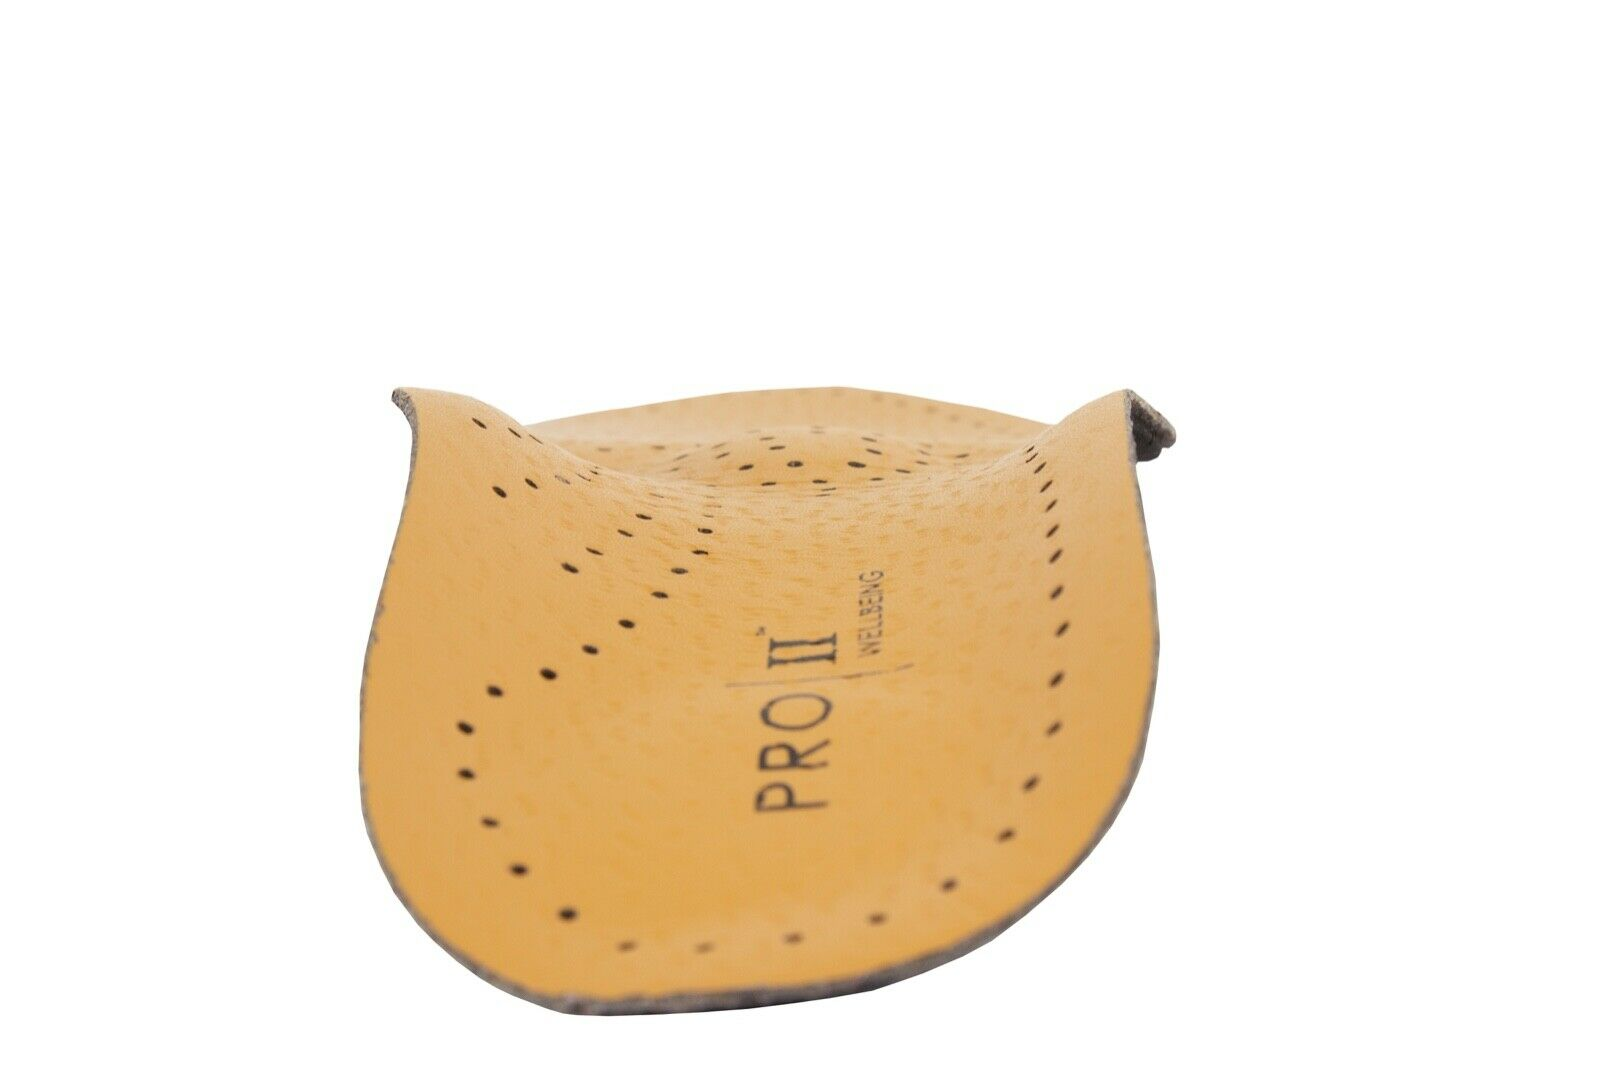 PRO-11-WELLBEING-Leather-Orthotic-insole-with-Metatarsal-raise 縮圖 10